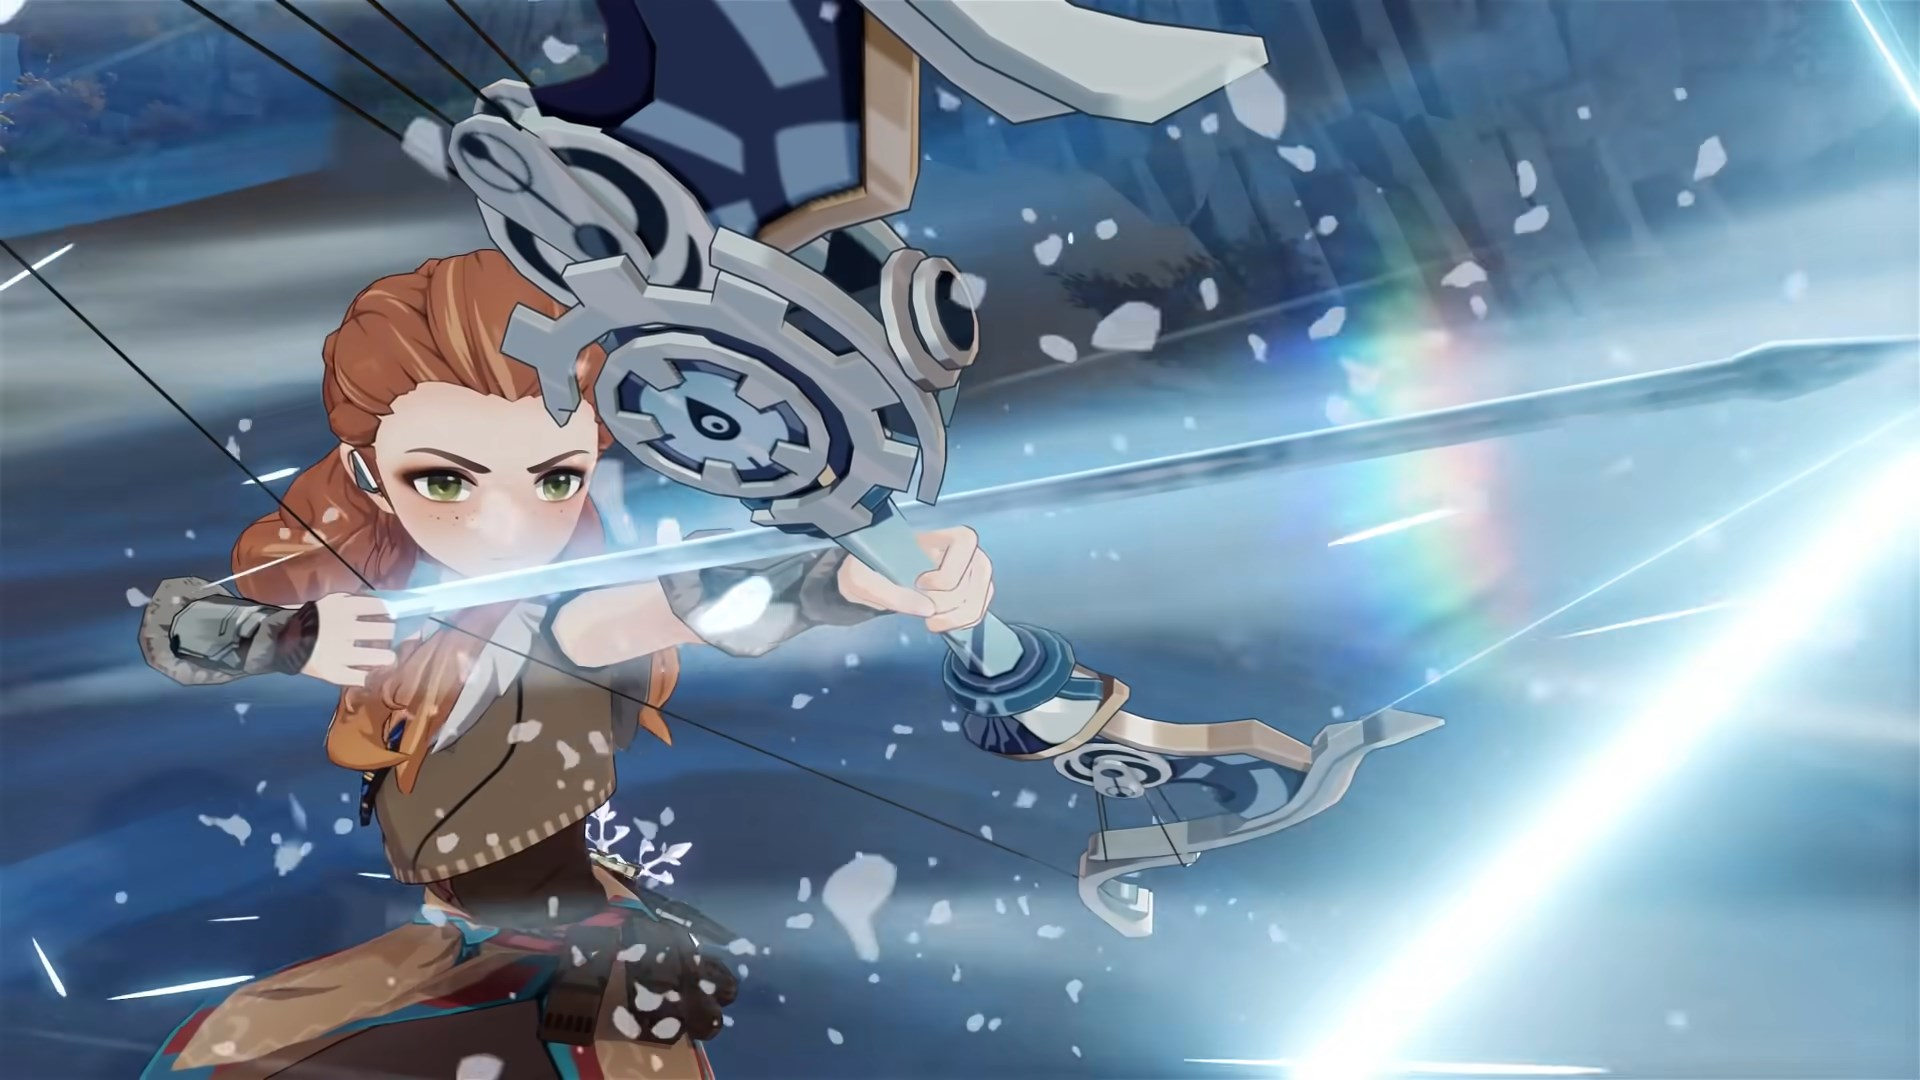 Aloy in Genshin Impact winding up to fire off an icy arrow